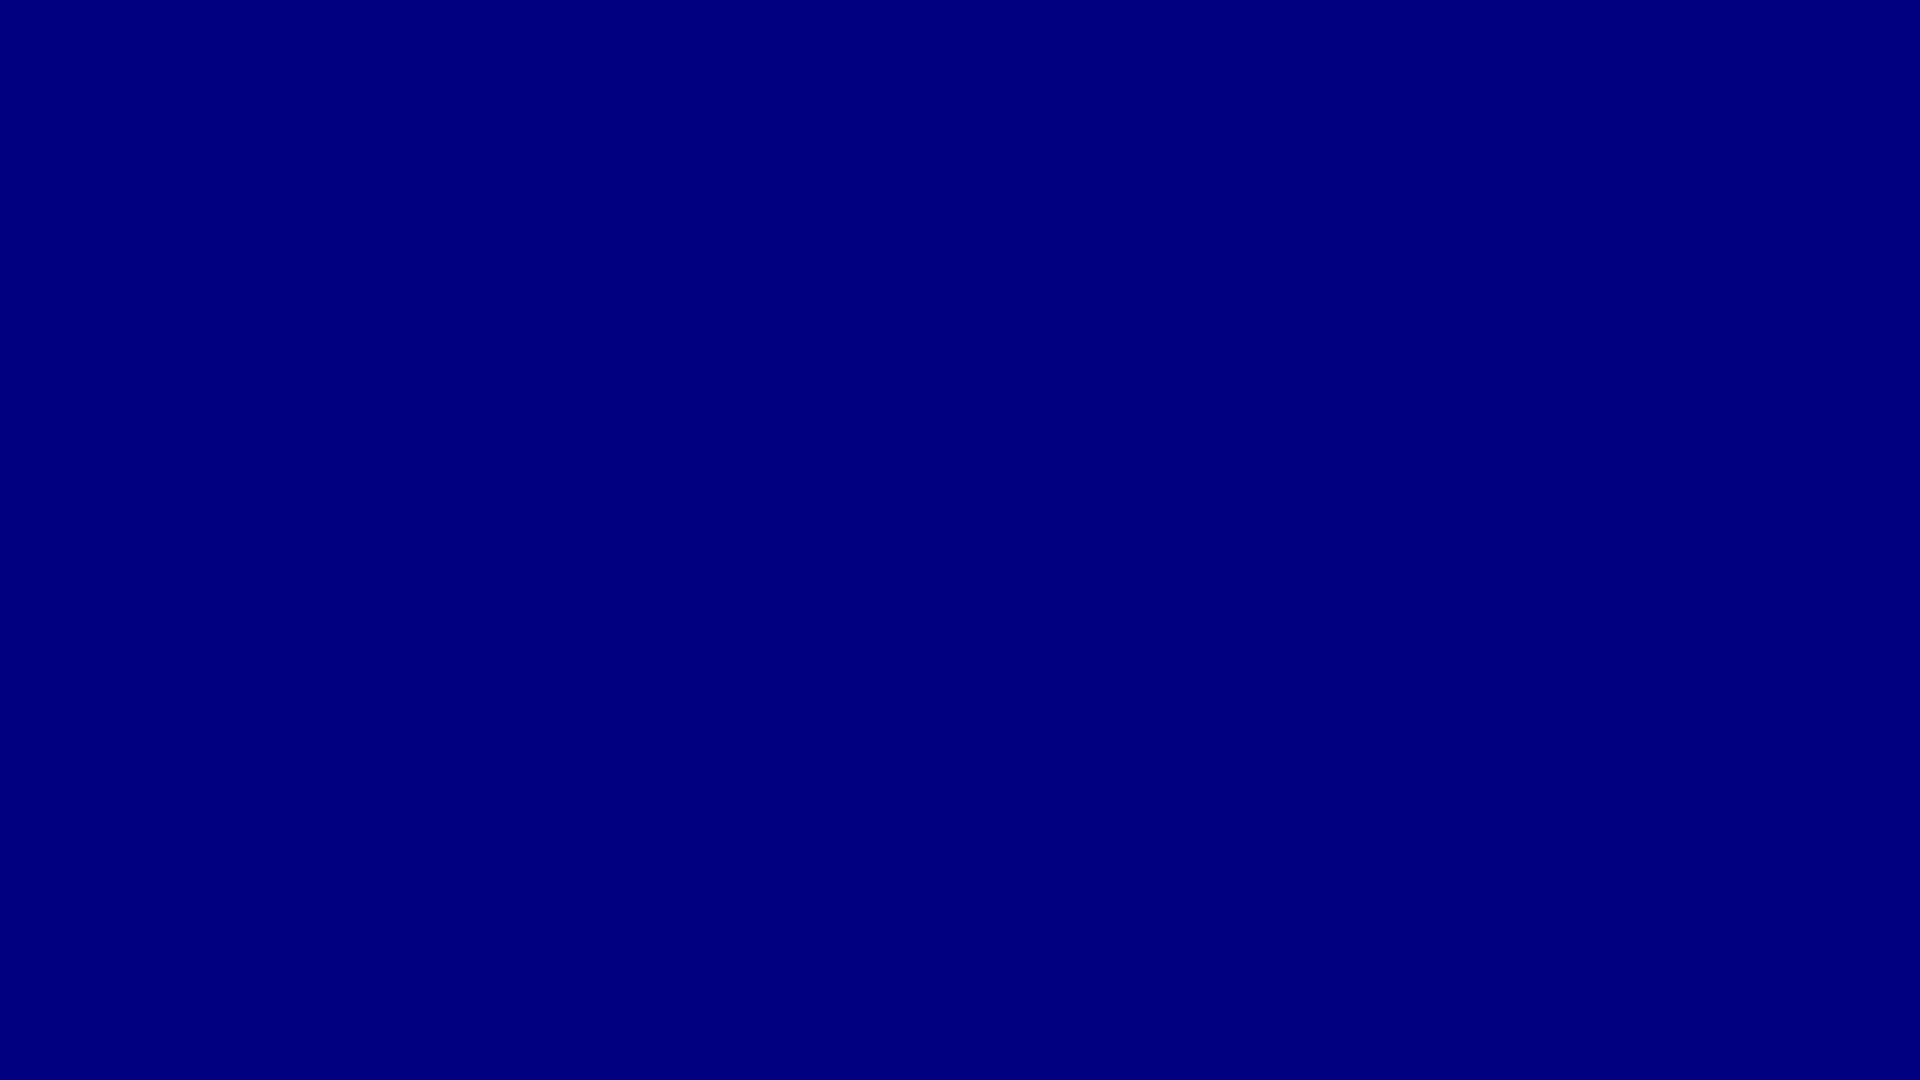 1920x1080 navy blue solid